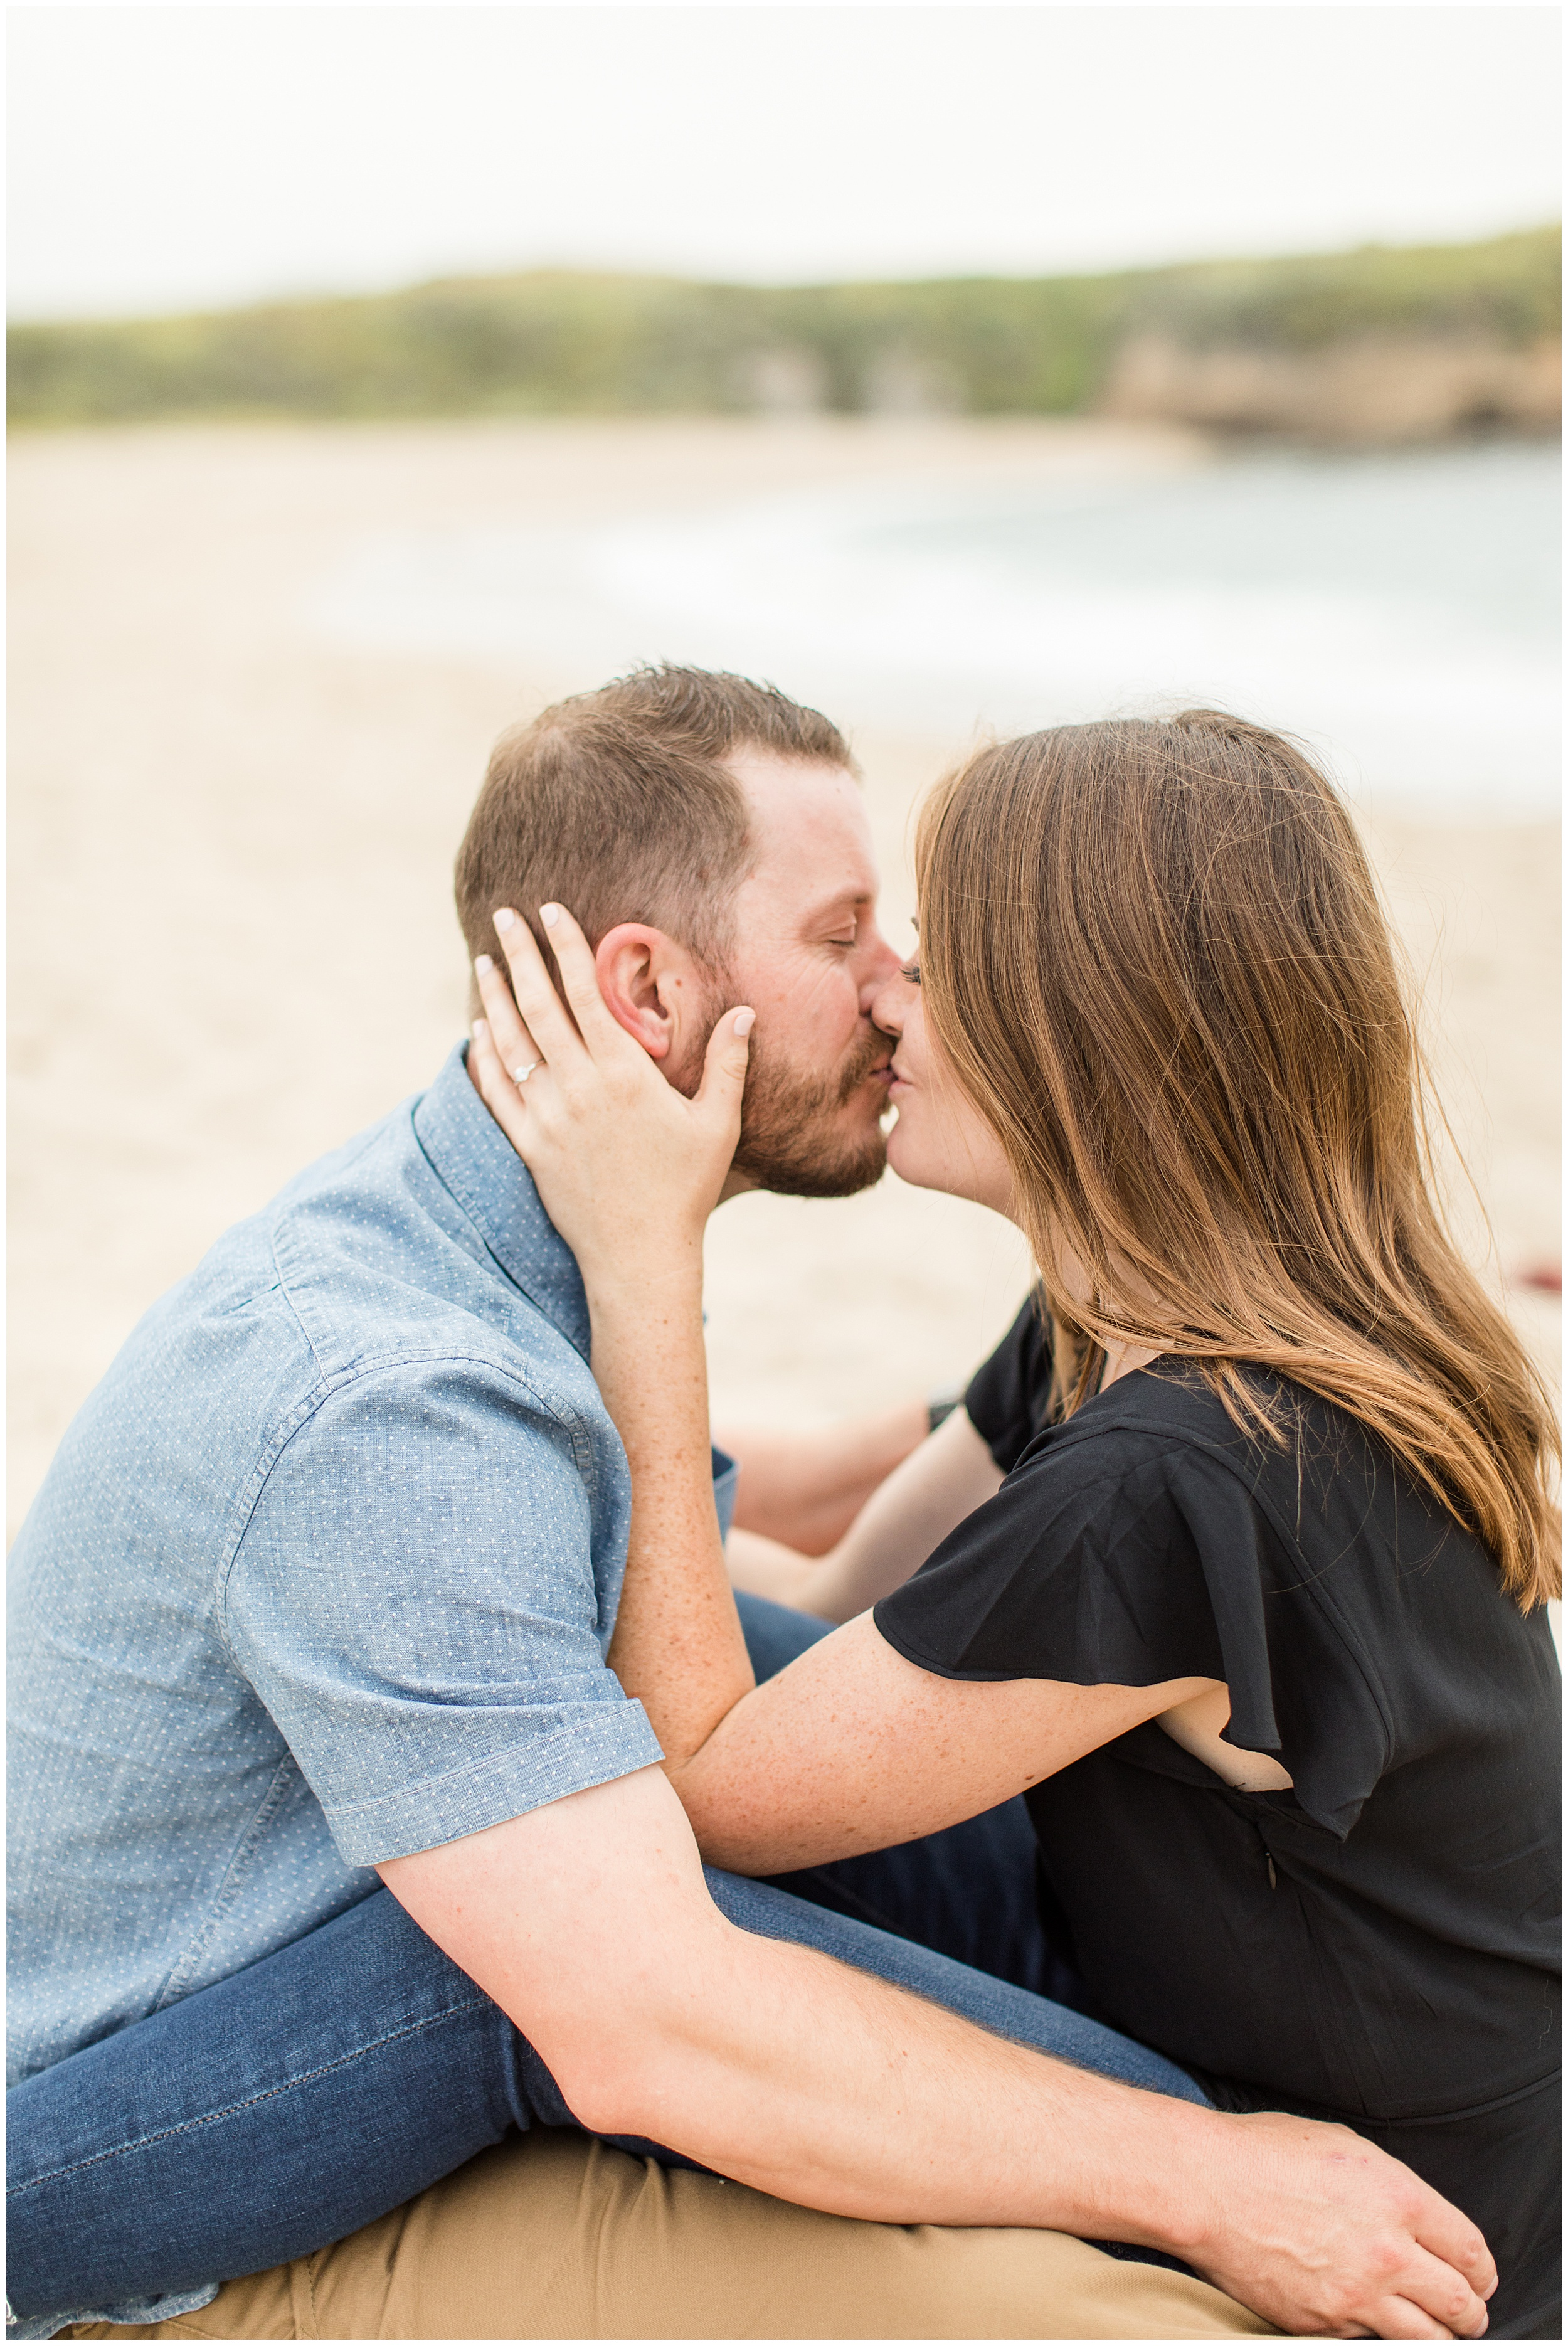 2019 carmel by the sea surprise proposal engagement session wedding photographer angela sue photography_0018.jpg